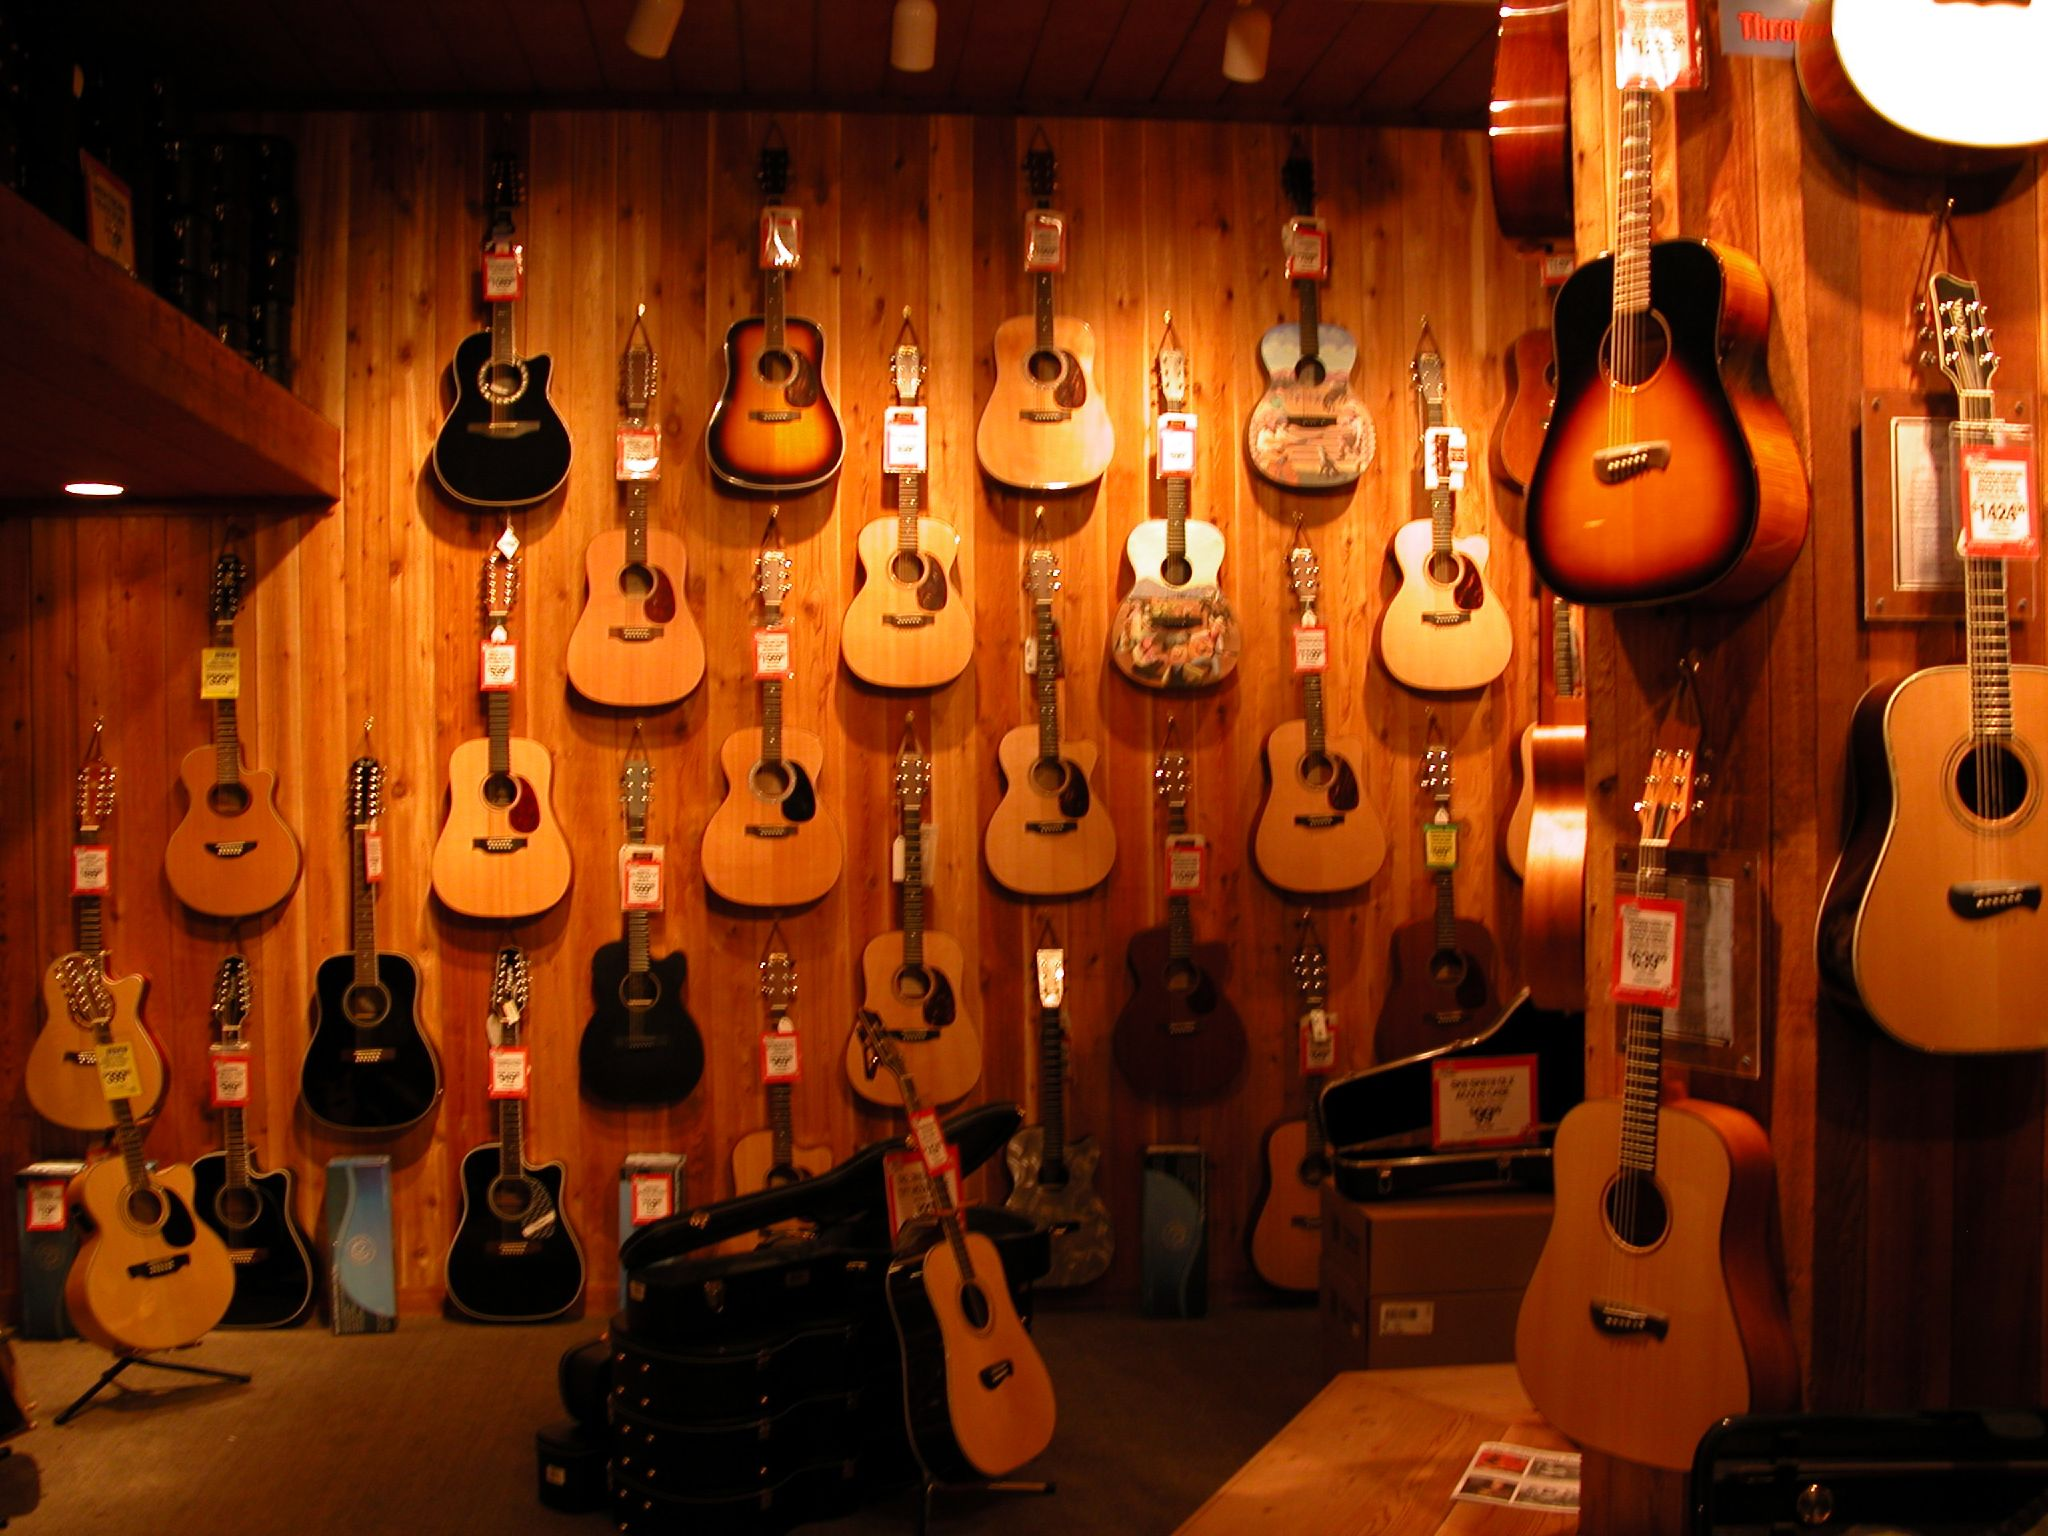 File:Guitar shop jpg - Wikimedia Commons